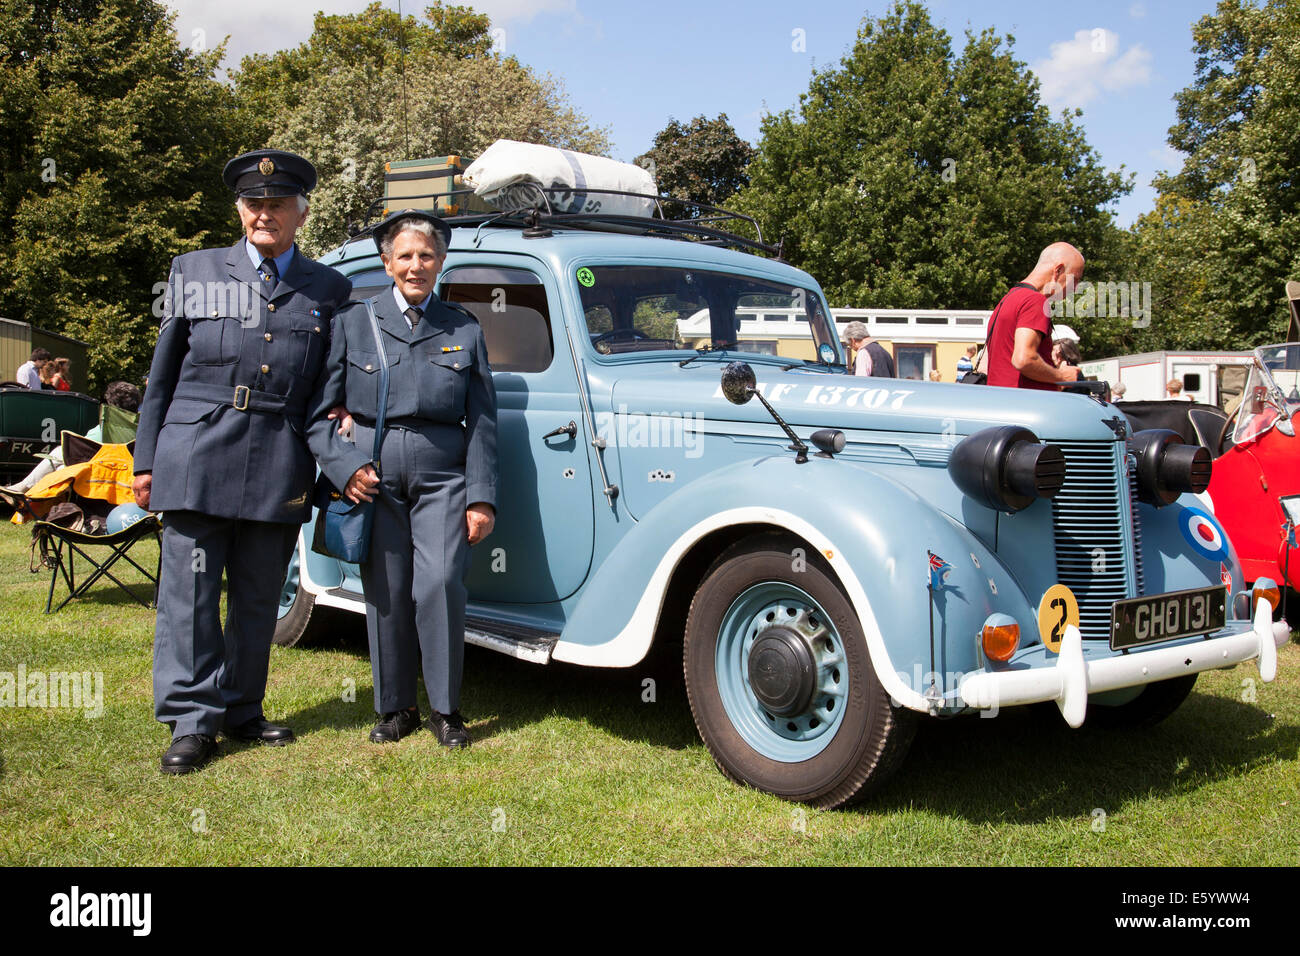 Retford, Nottinghamshire, UK. 9th August, 2014. Participants of the first Retford War Weekend dressed in World War - Stock Image